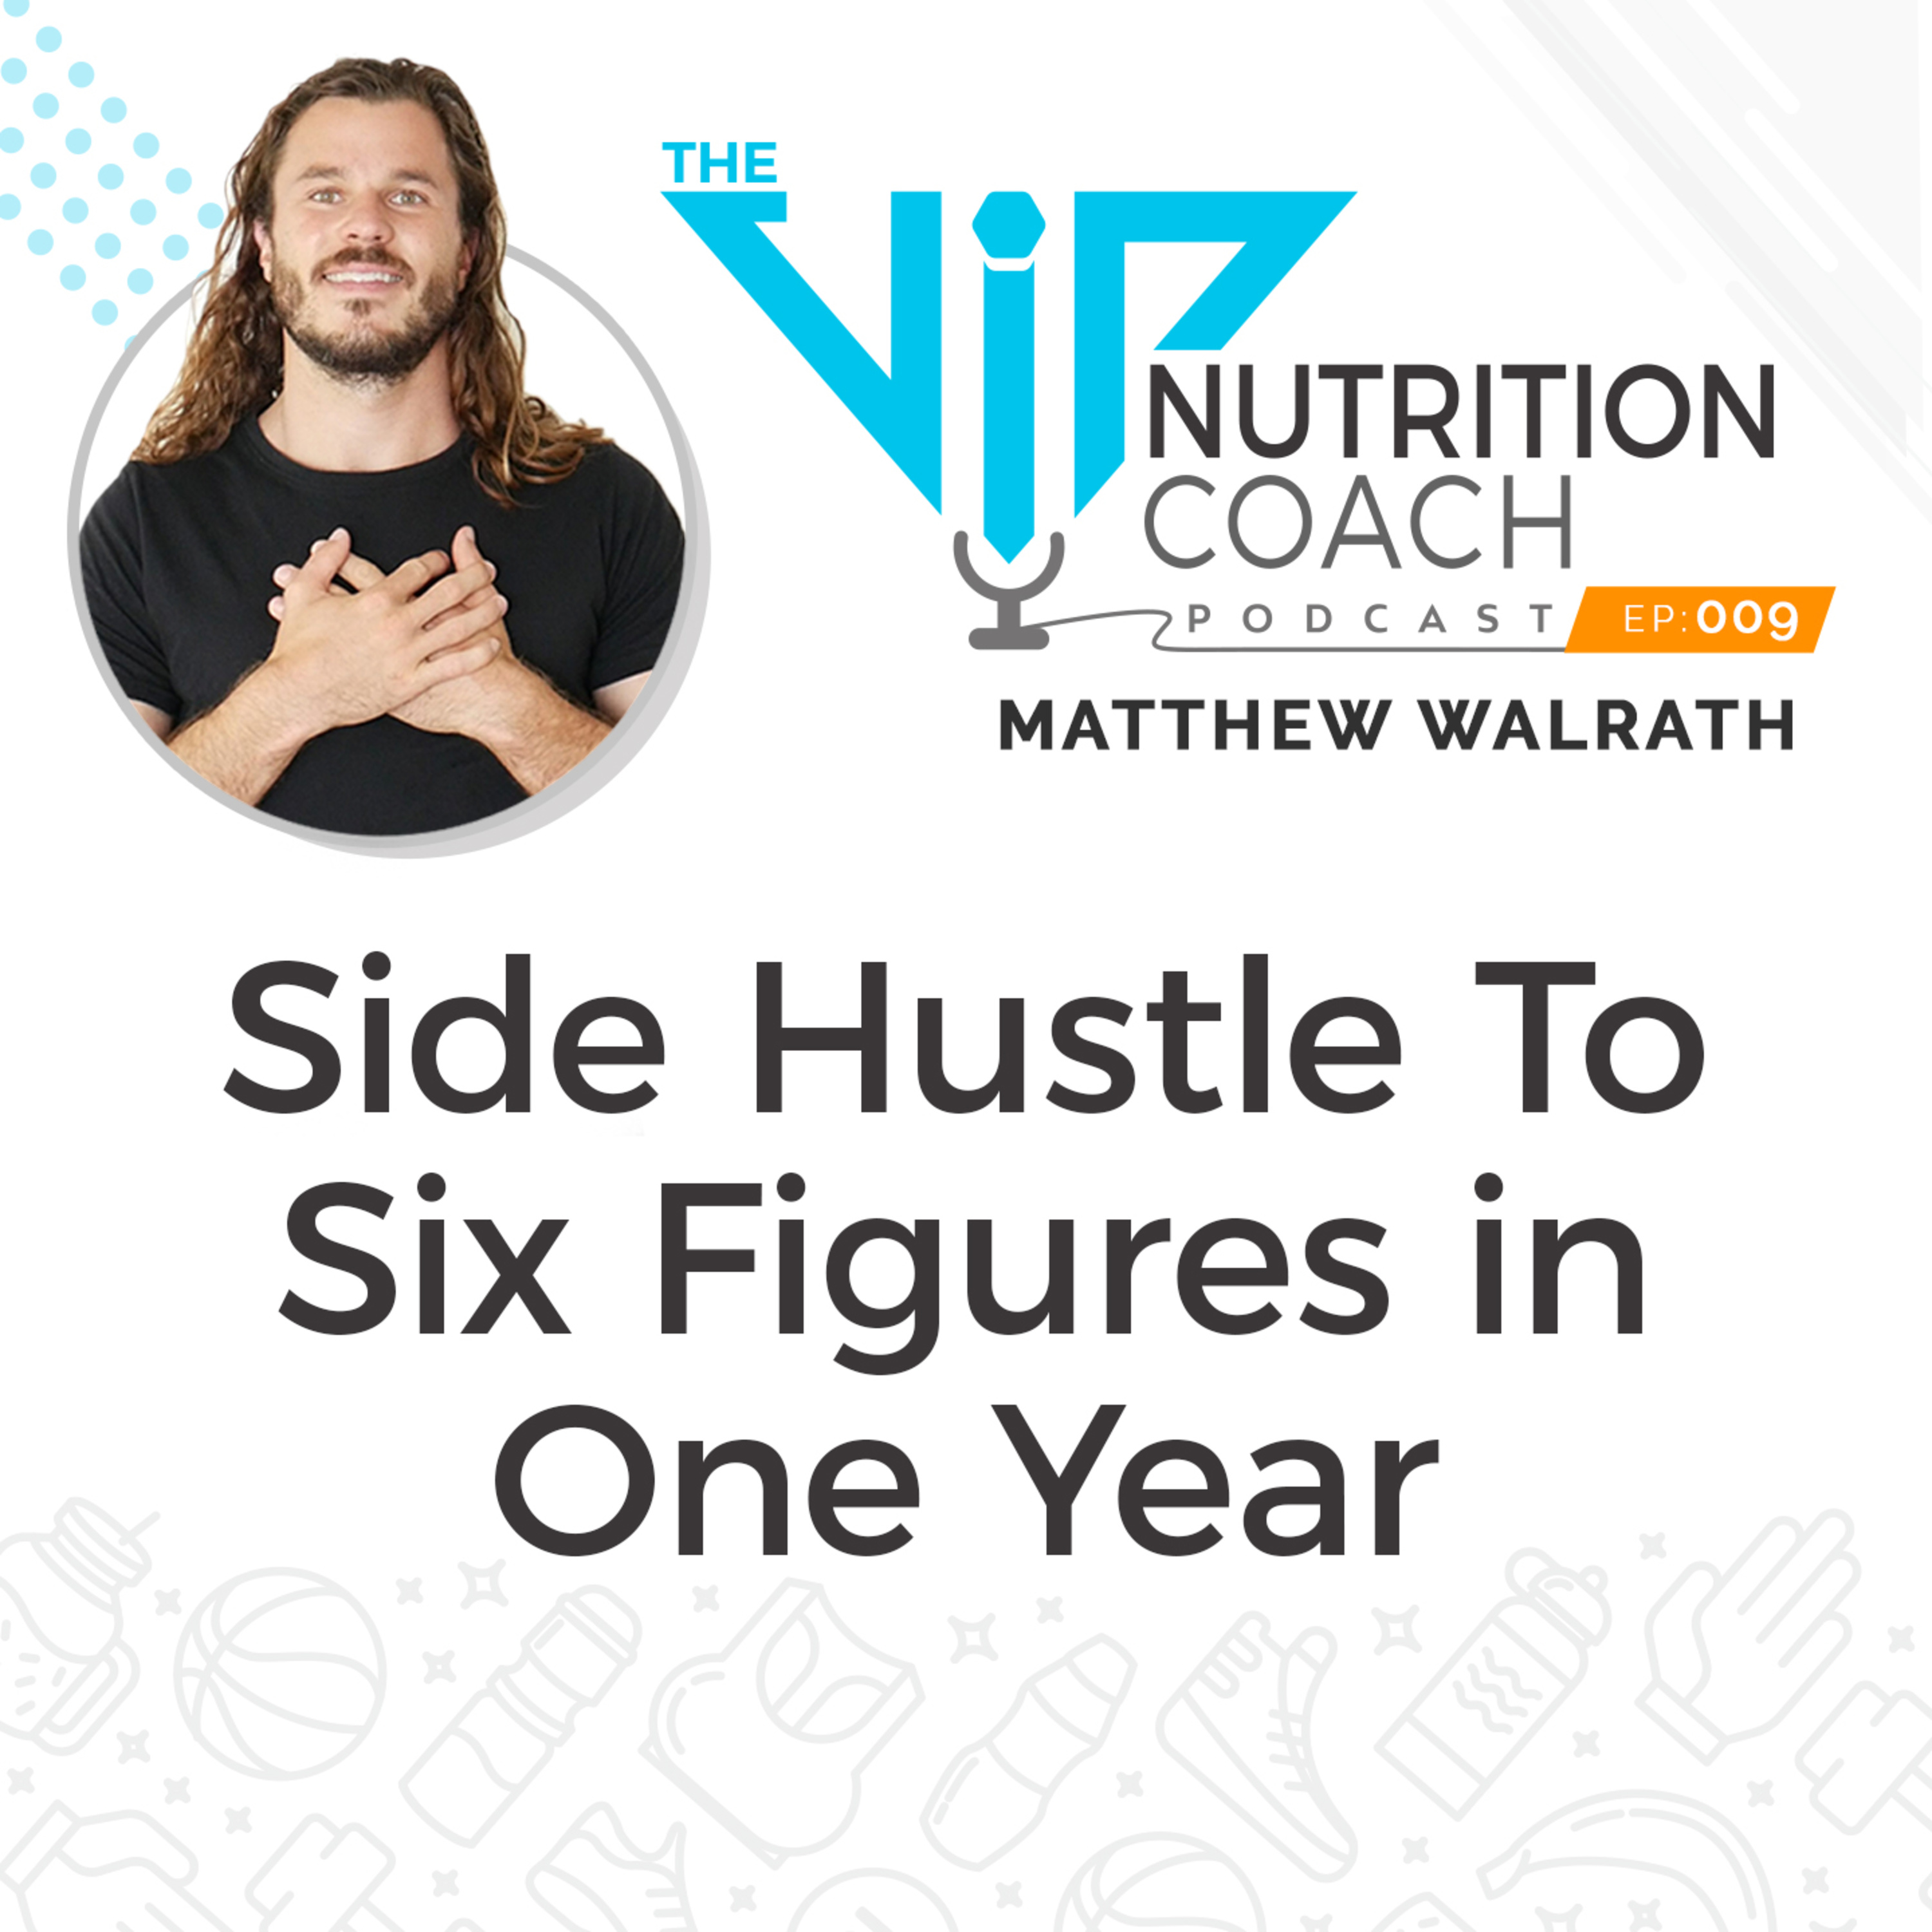 How to Turn Your Nutrition Coaching Side Hustle into a Six-Figure Business